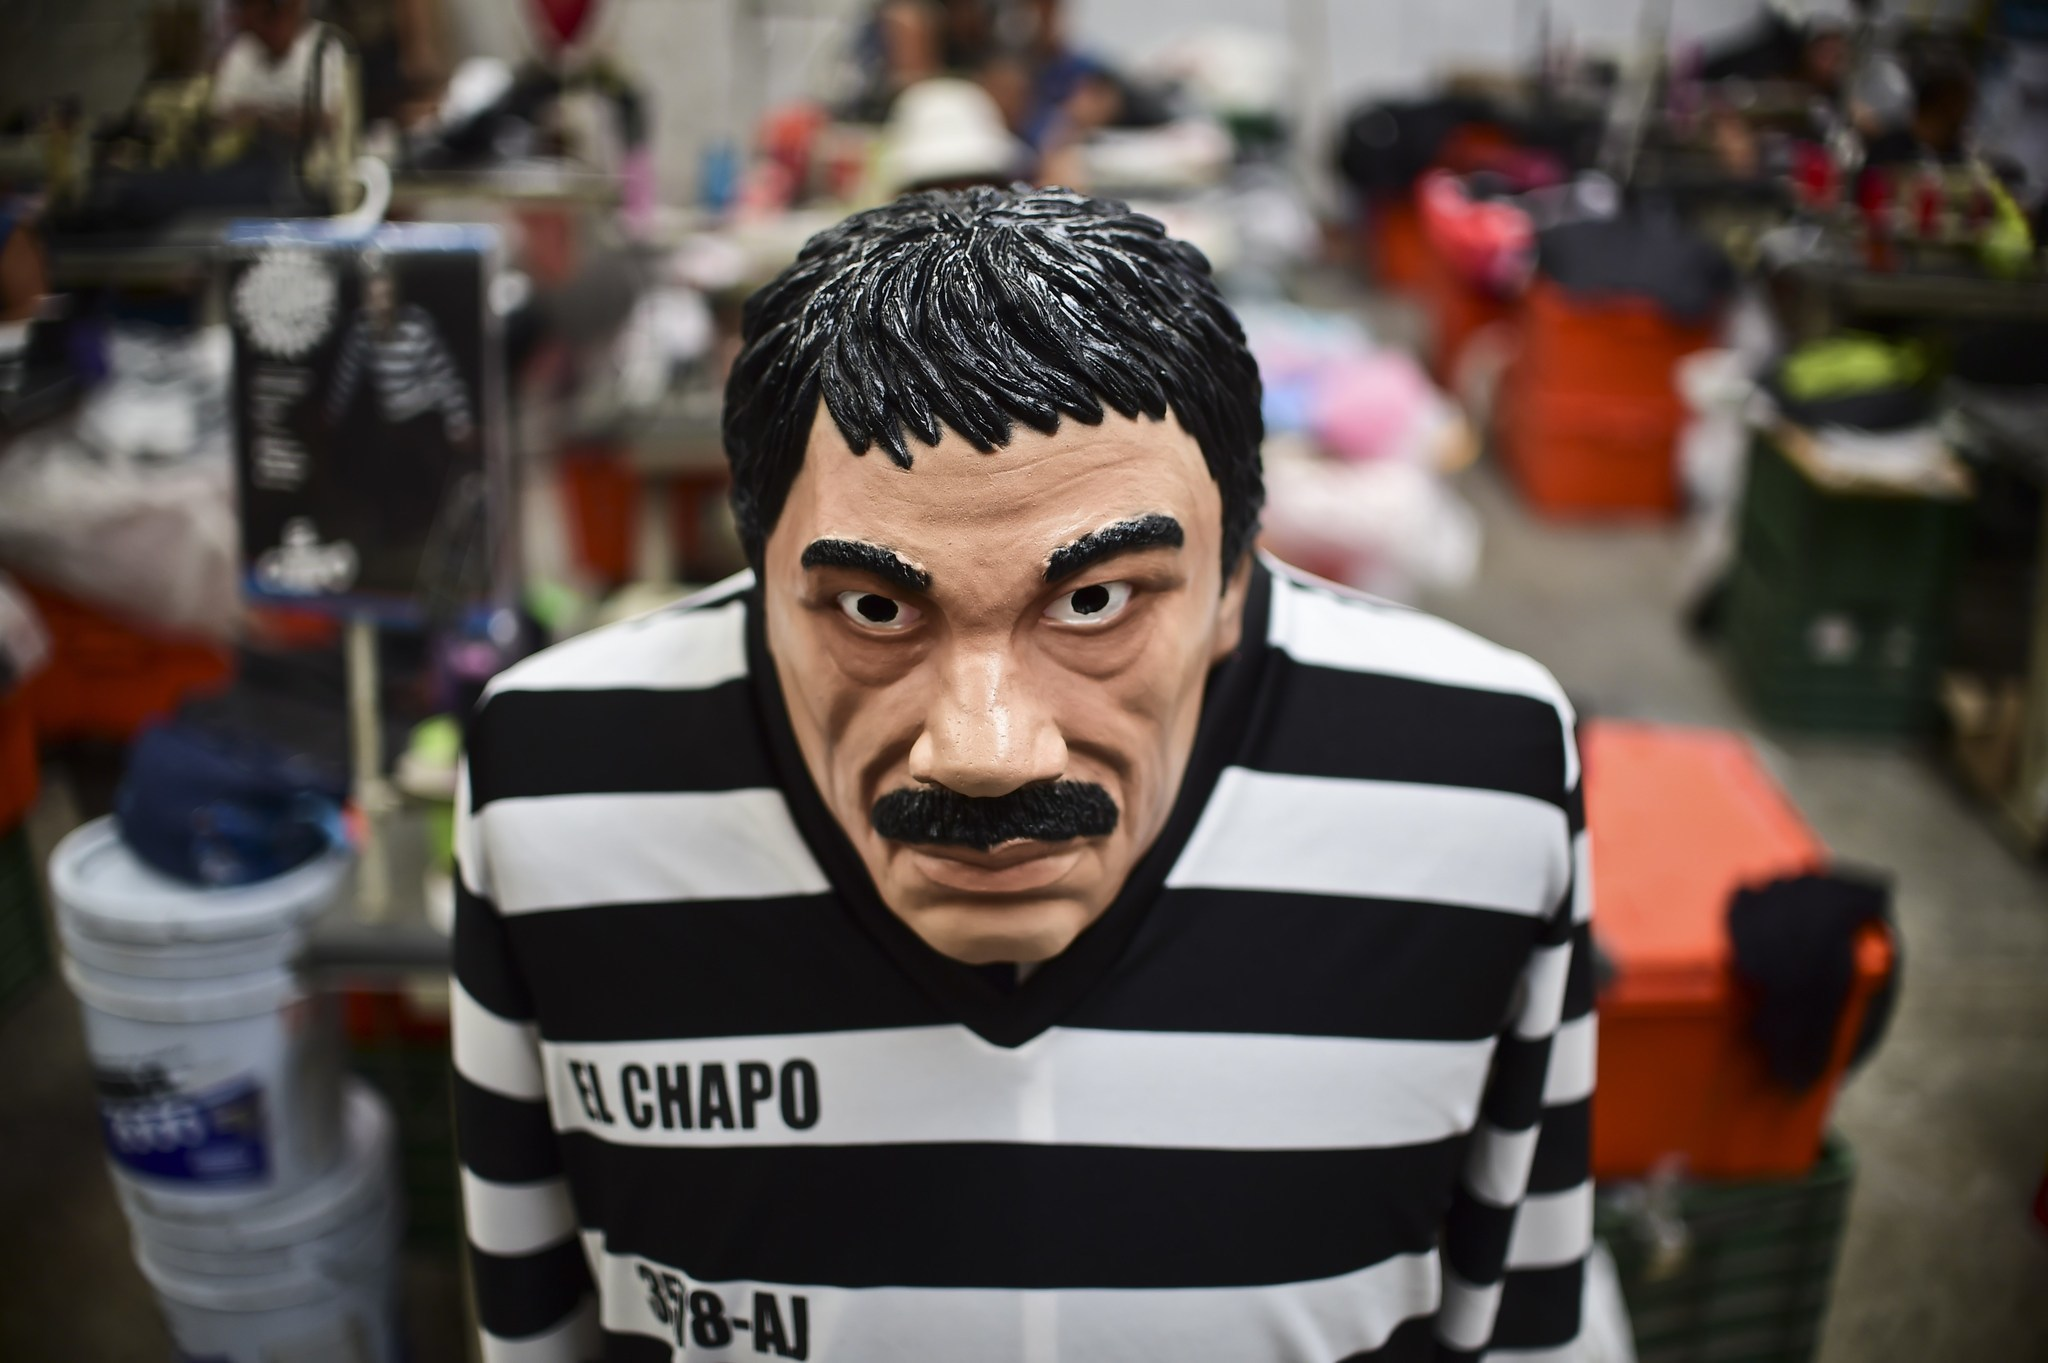 El Chapo everywhere Drug lord costume a Halloween hit in Mexico U.S. - Chicago Tribune  sc 1 st  Chicago Tribune & El Chapo everywhere: Drug lord costume a Halloween hit in Mexico ...